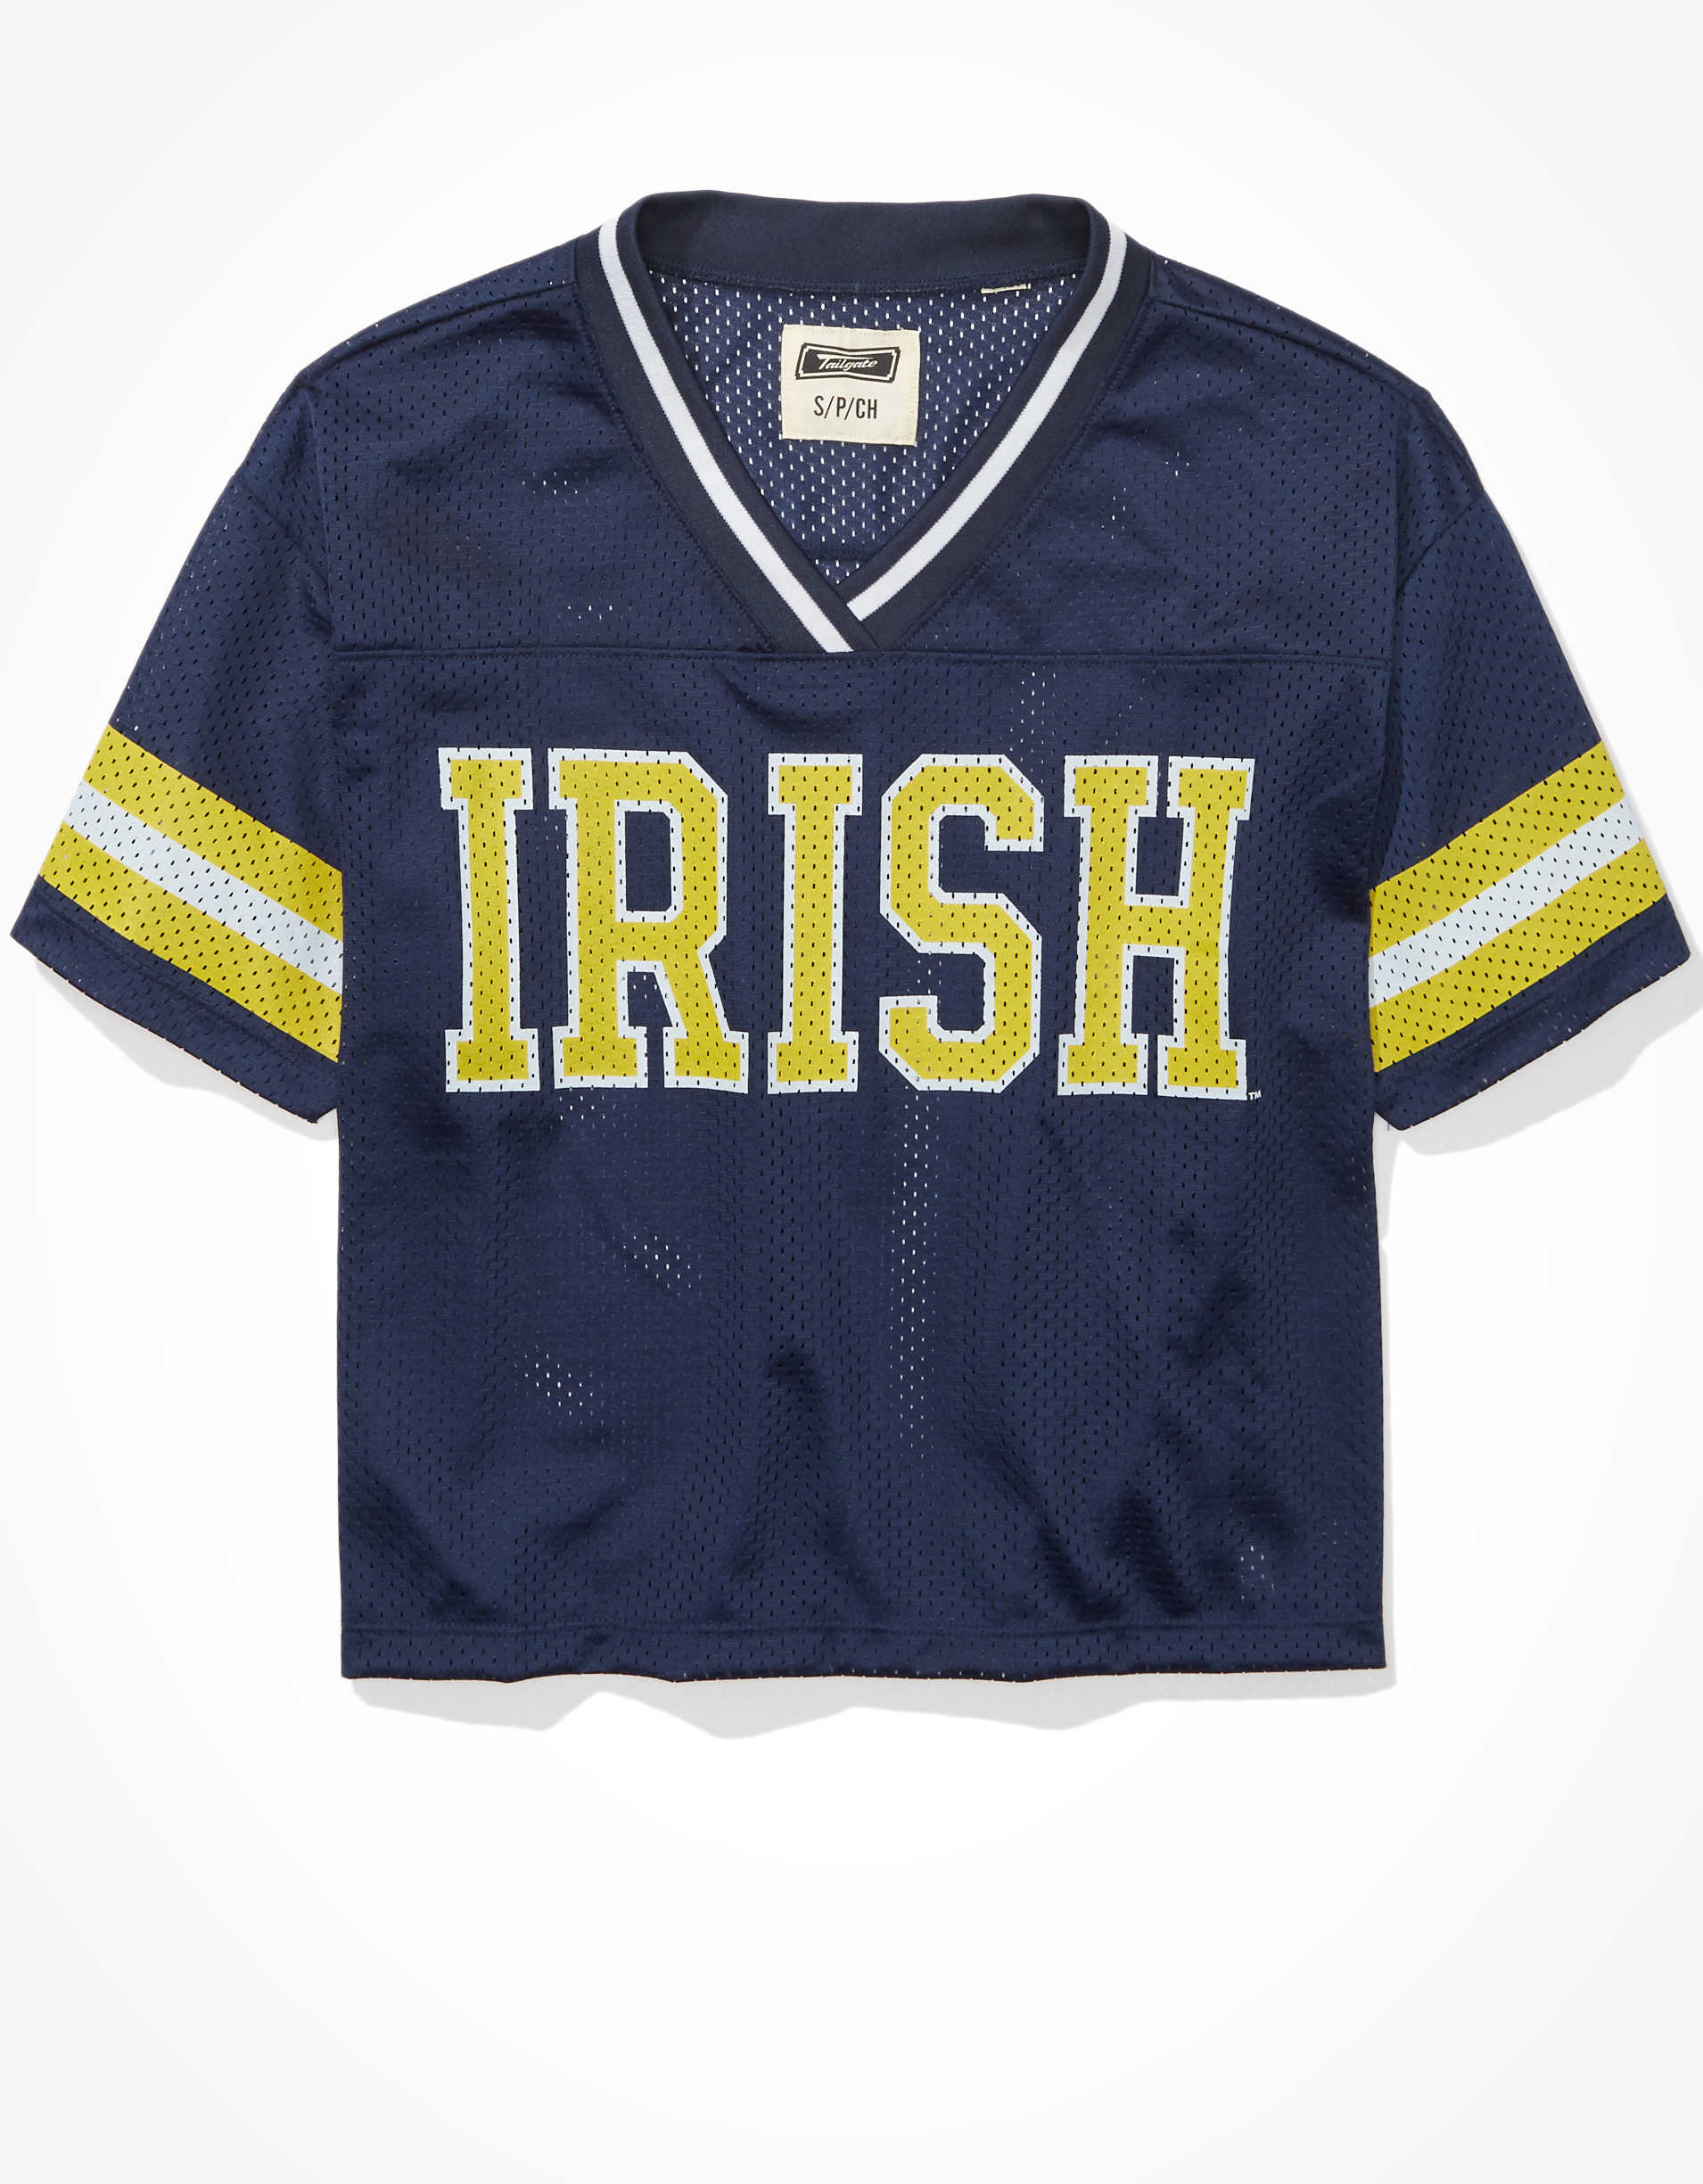 Tailgate Women's Notre Dame Fighting Irish Mesh Jersey